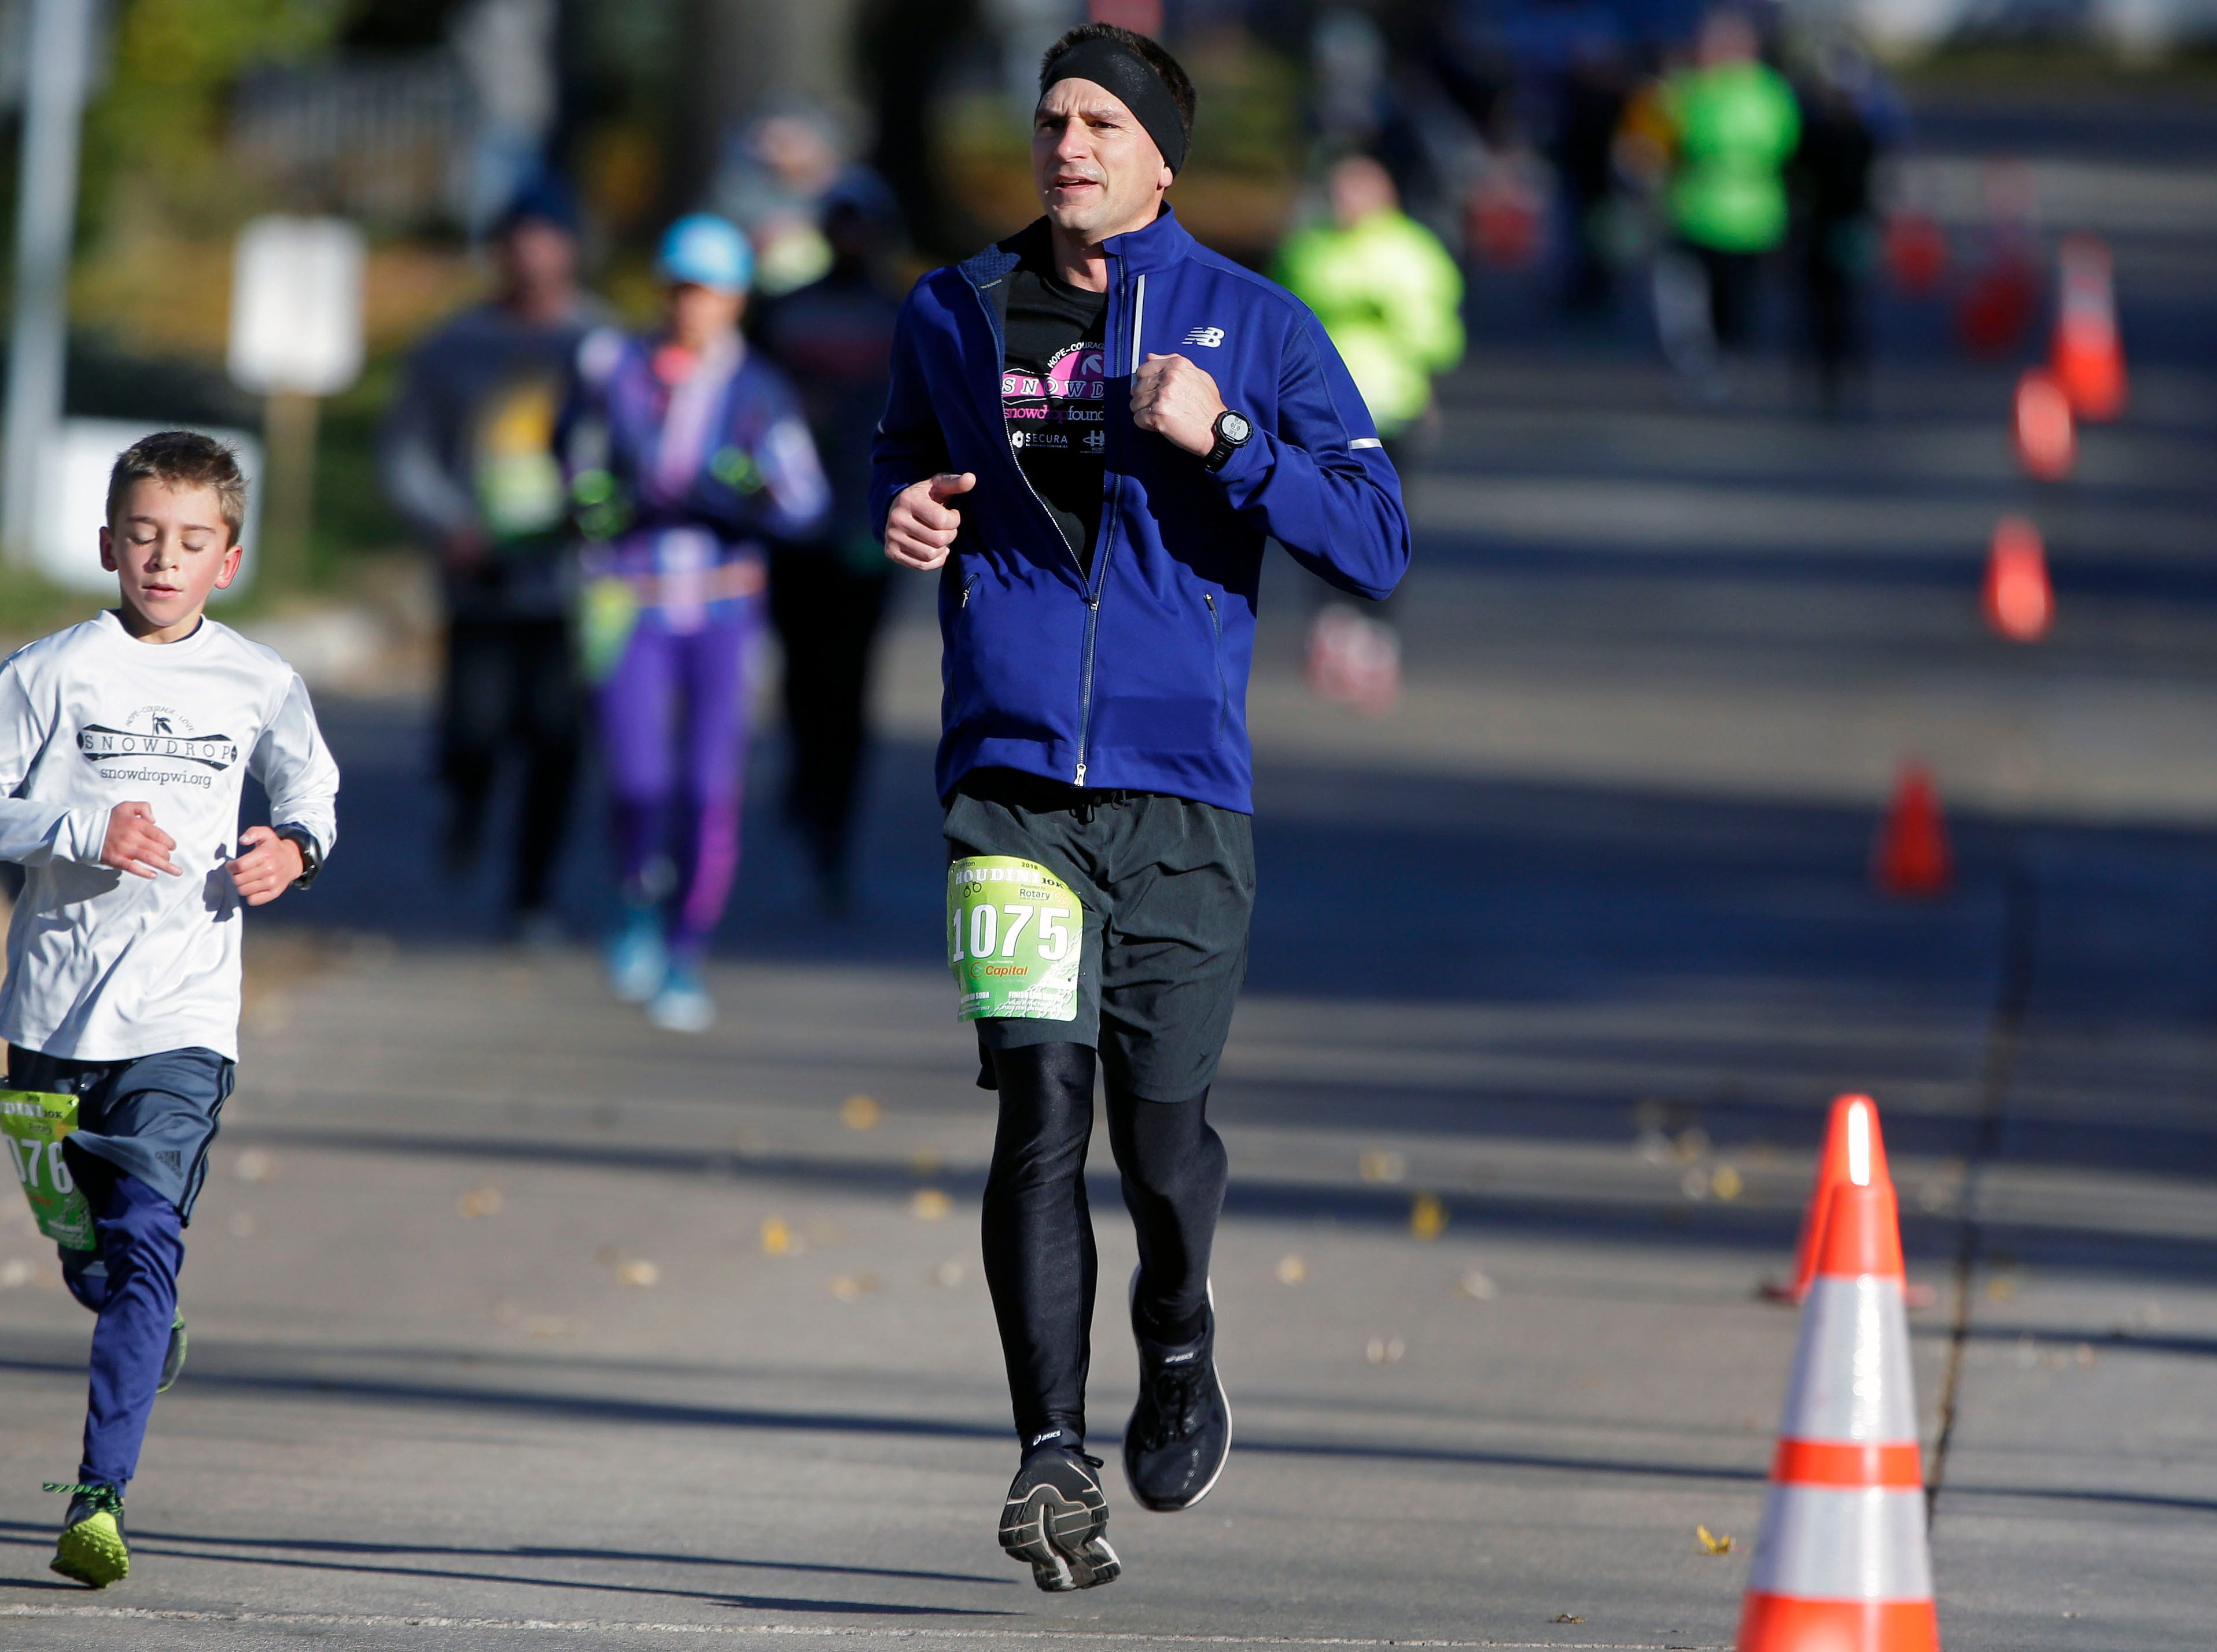 Marcus (left) and Sam Benjamin run during the 4th annual Appleton Houdini 10K tSaturday, November 3, 2018, in Appleton, Wis.Ron Page/USA TODAY NETWORK-Wisconsin